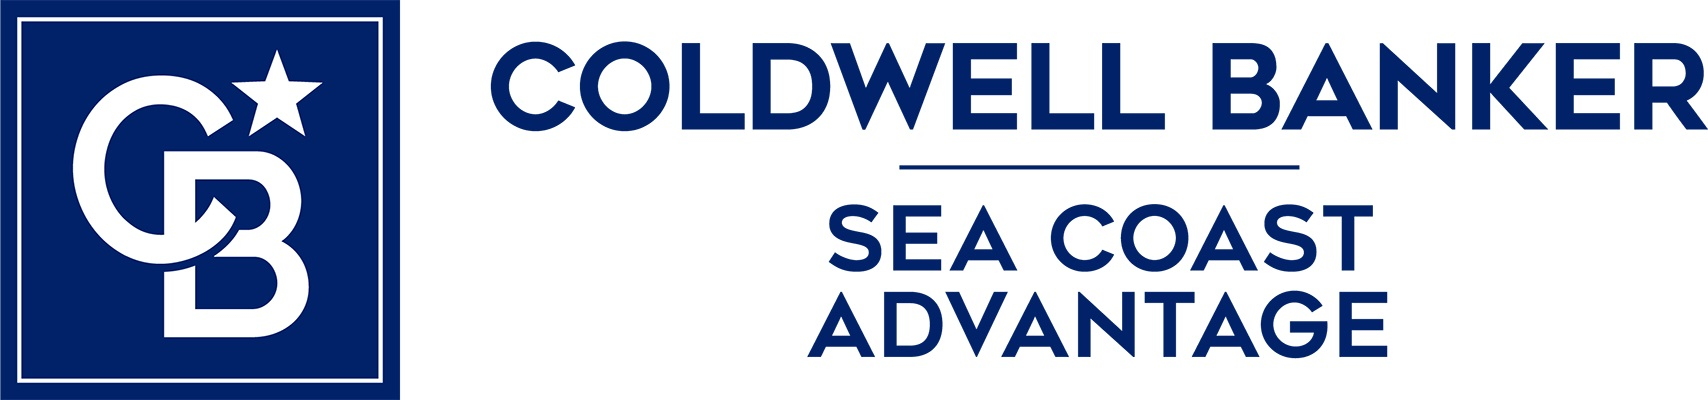 Coldwell Banker Sea Coast Advantage - Cronick and Associates Logo